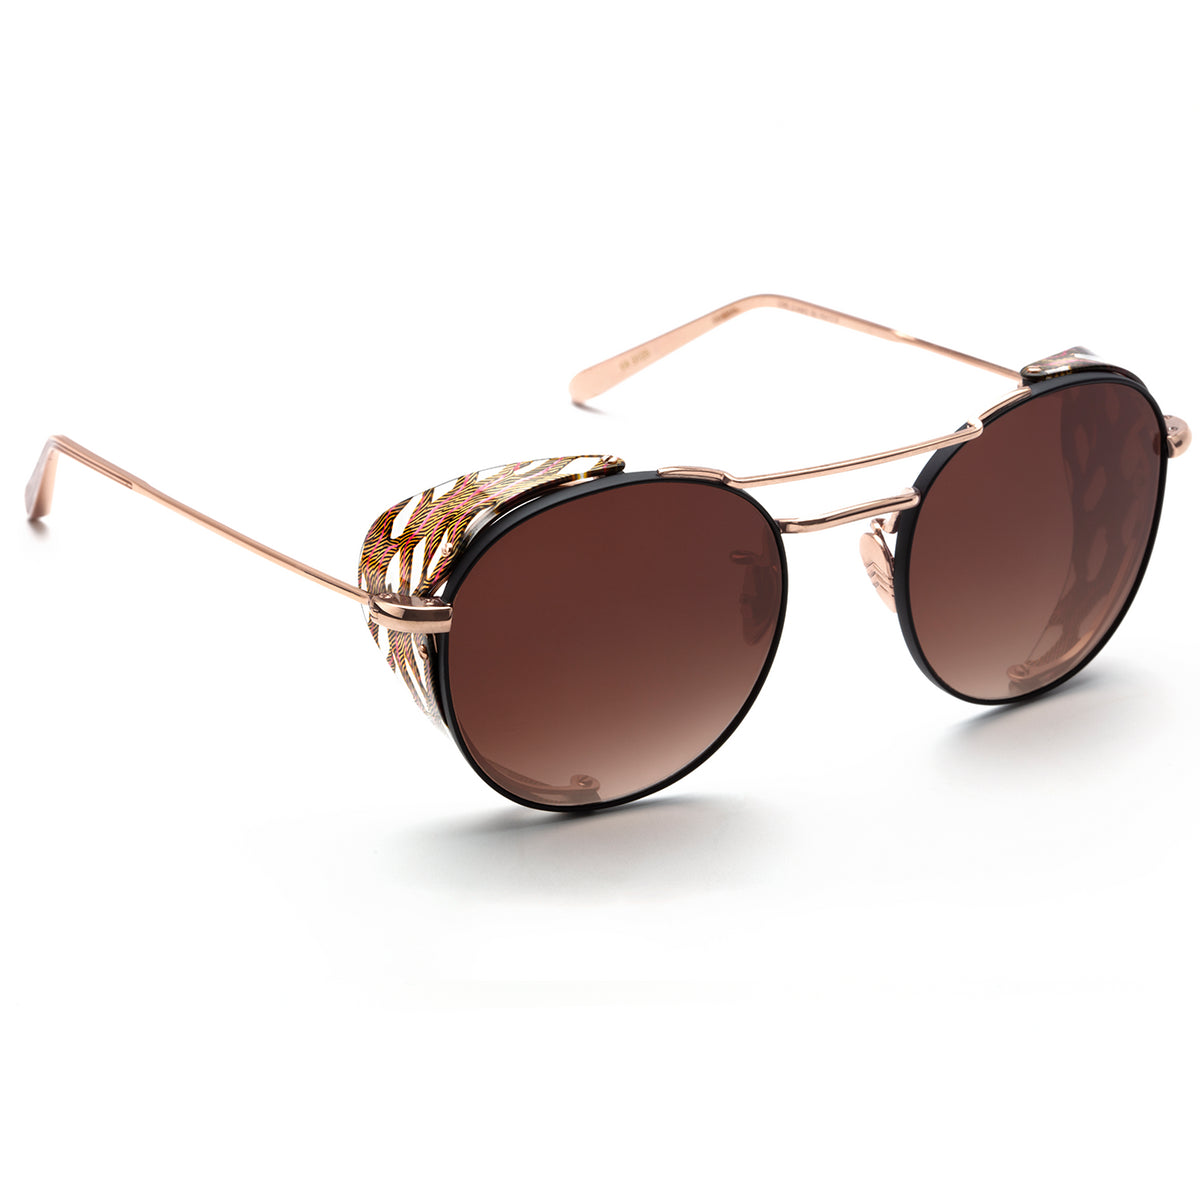 ORLEANS BLINKER | Rose Gold + D'Oro handcrafted acetate sunglasses